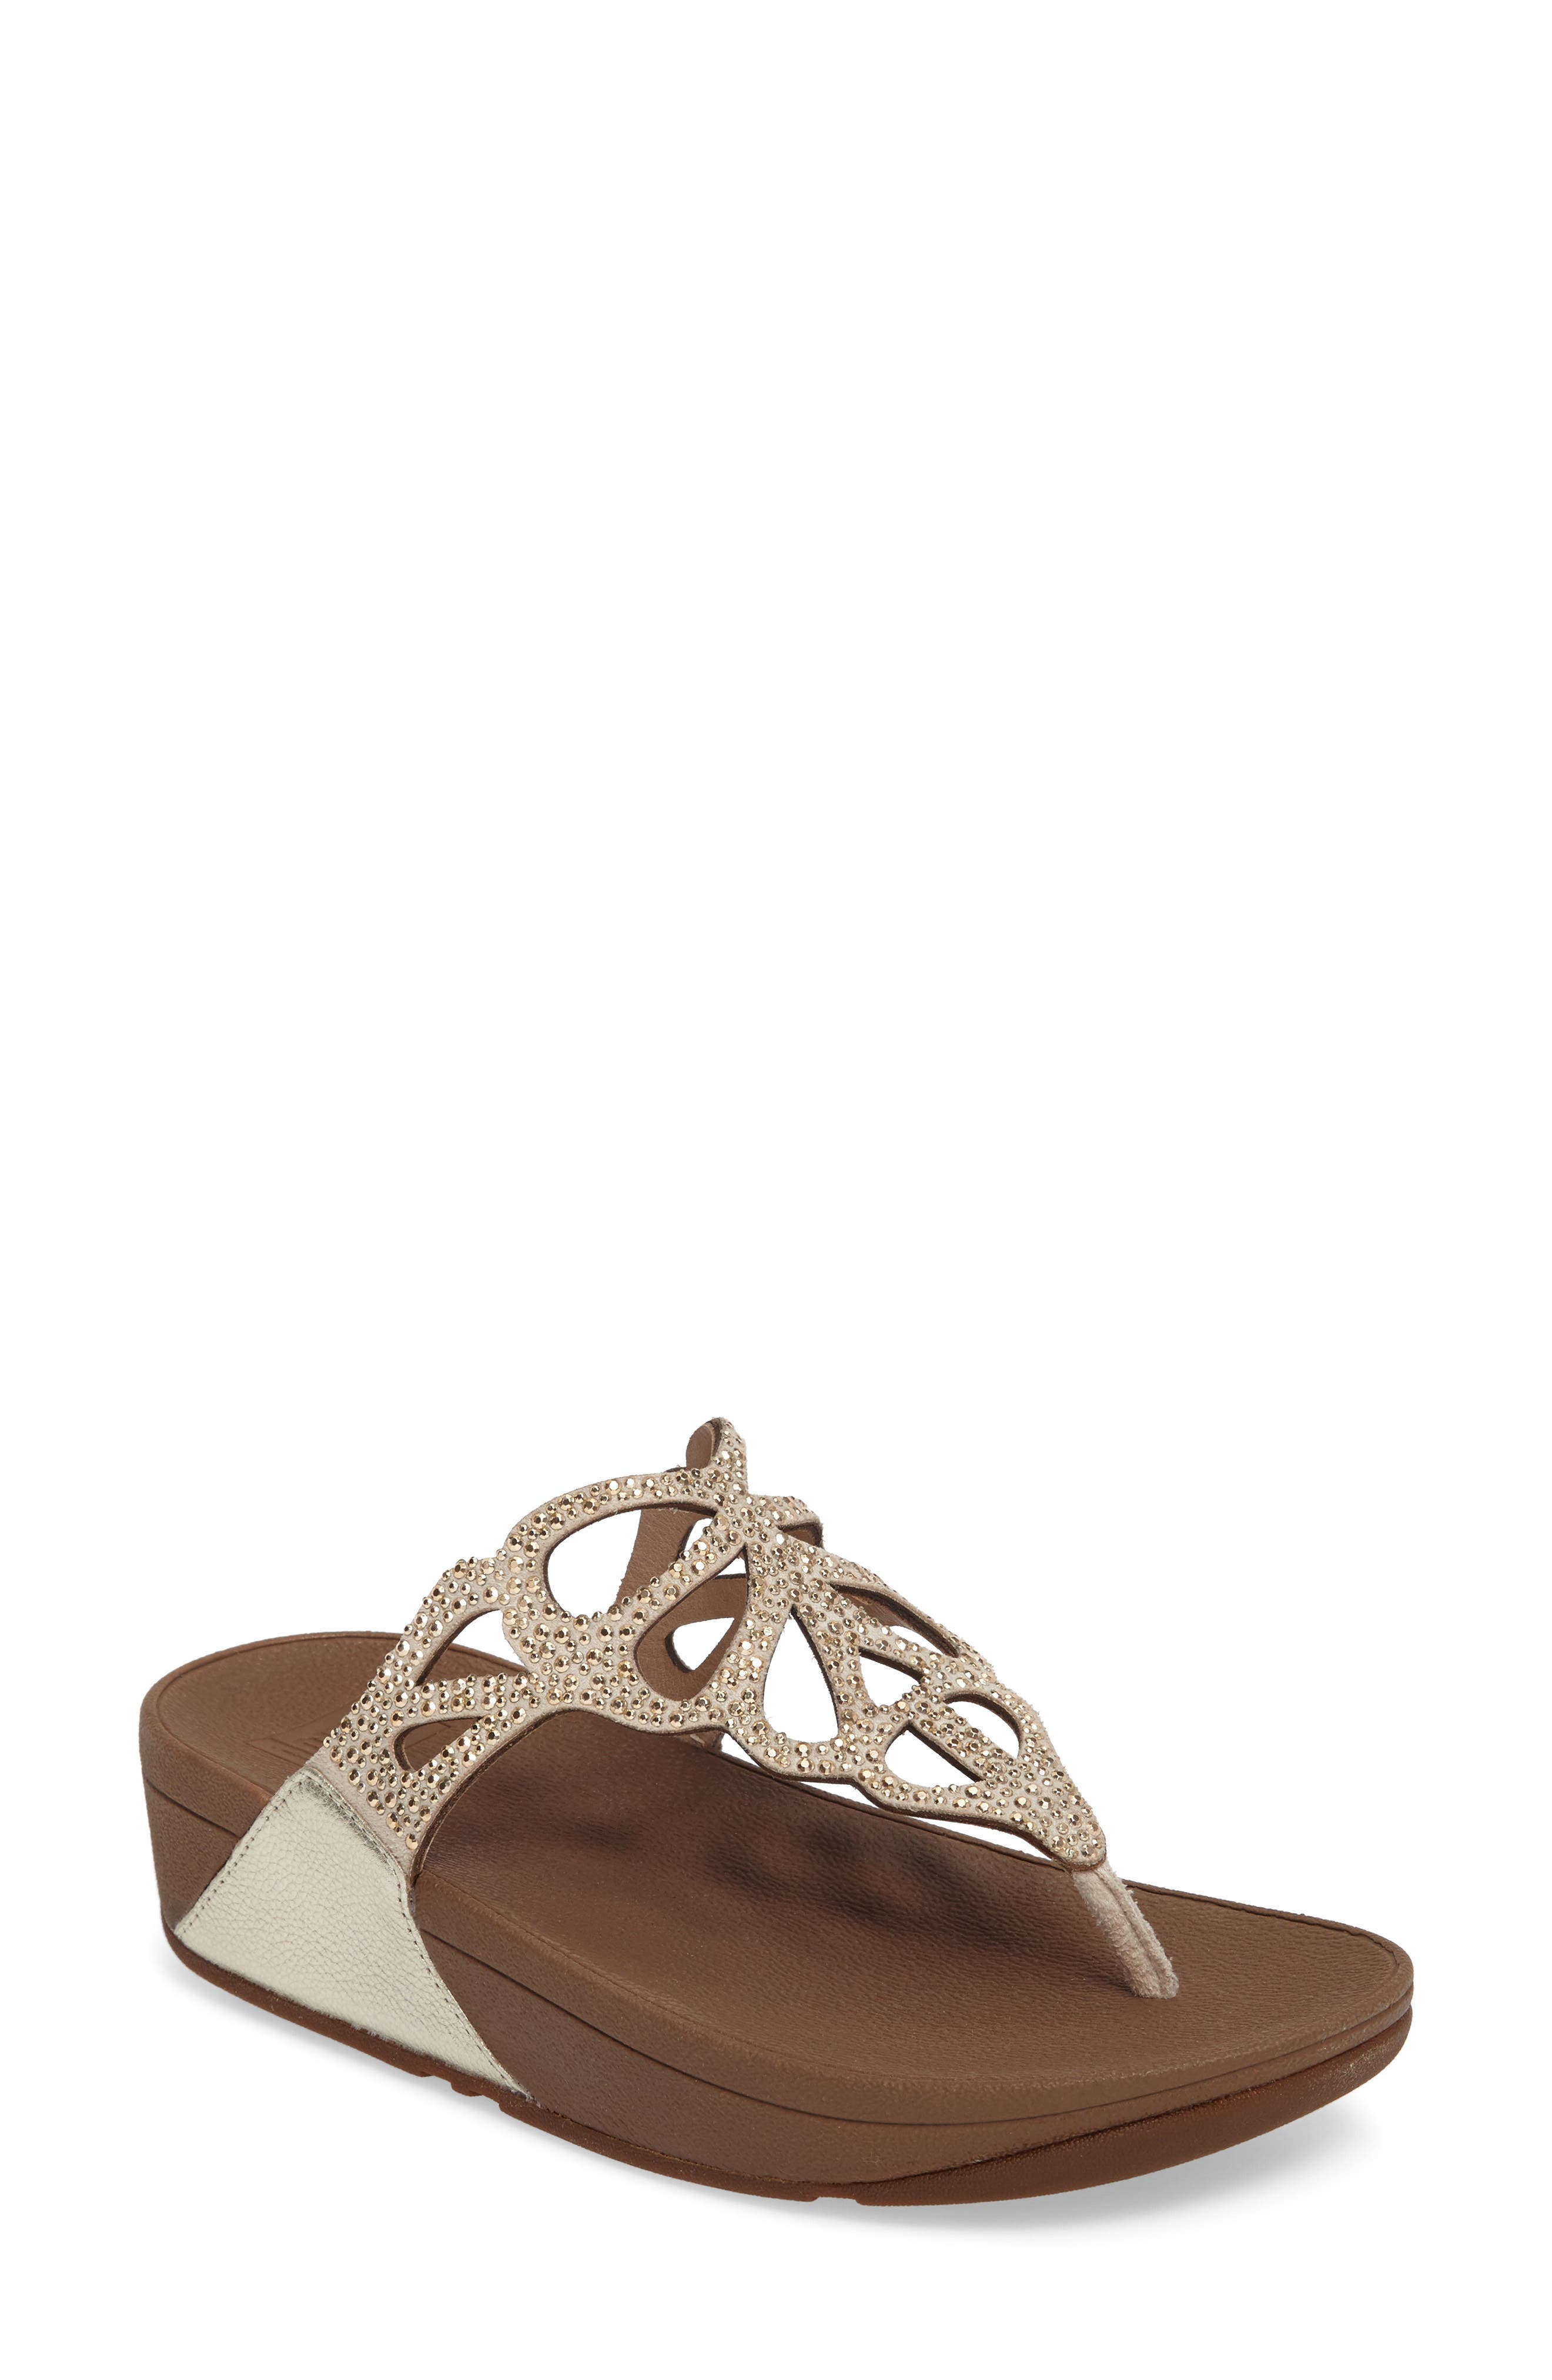 FitFlop Bumble Crystal Flip Flop (Women)